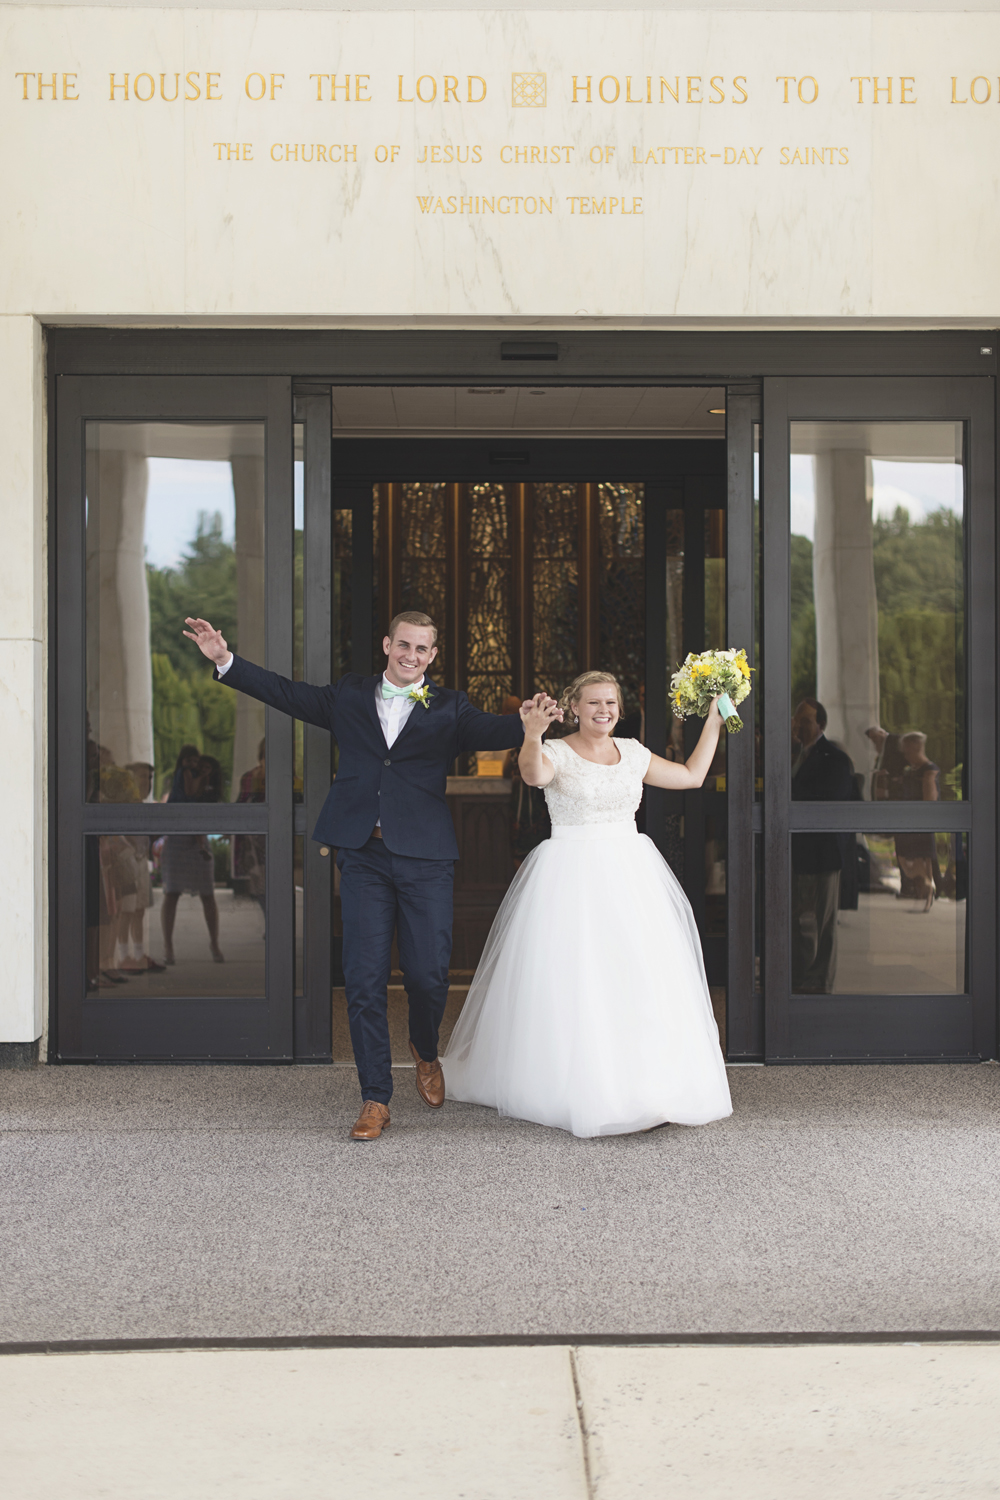 LDS Temple Mormon Wedding | Washington, DC, Wedding | Temple sealing exit